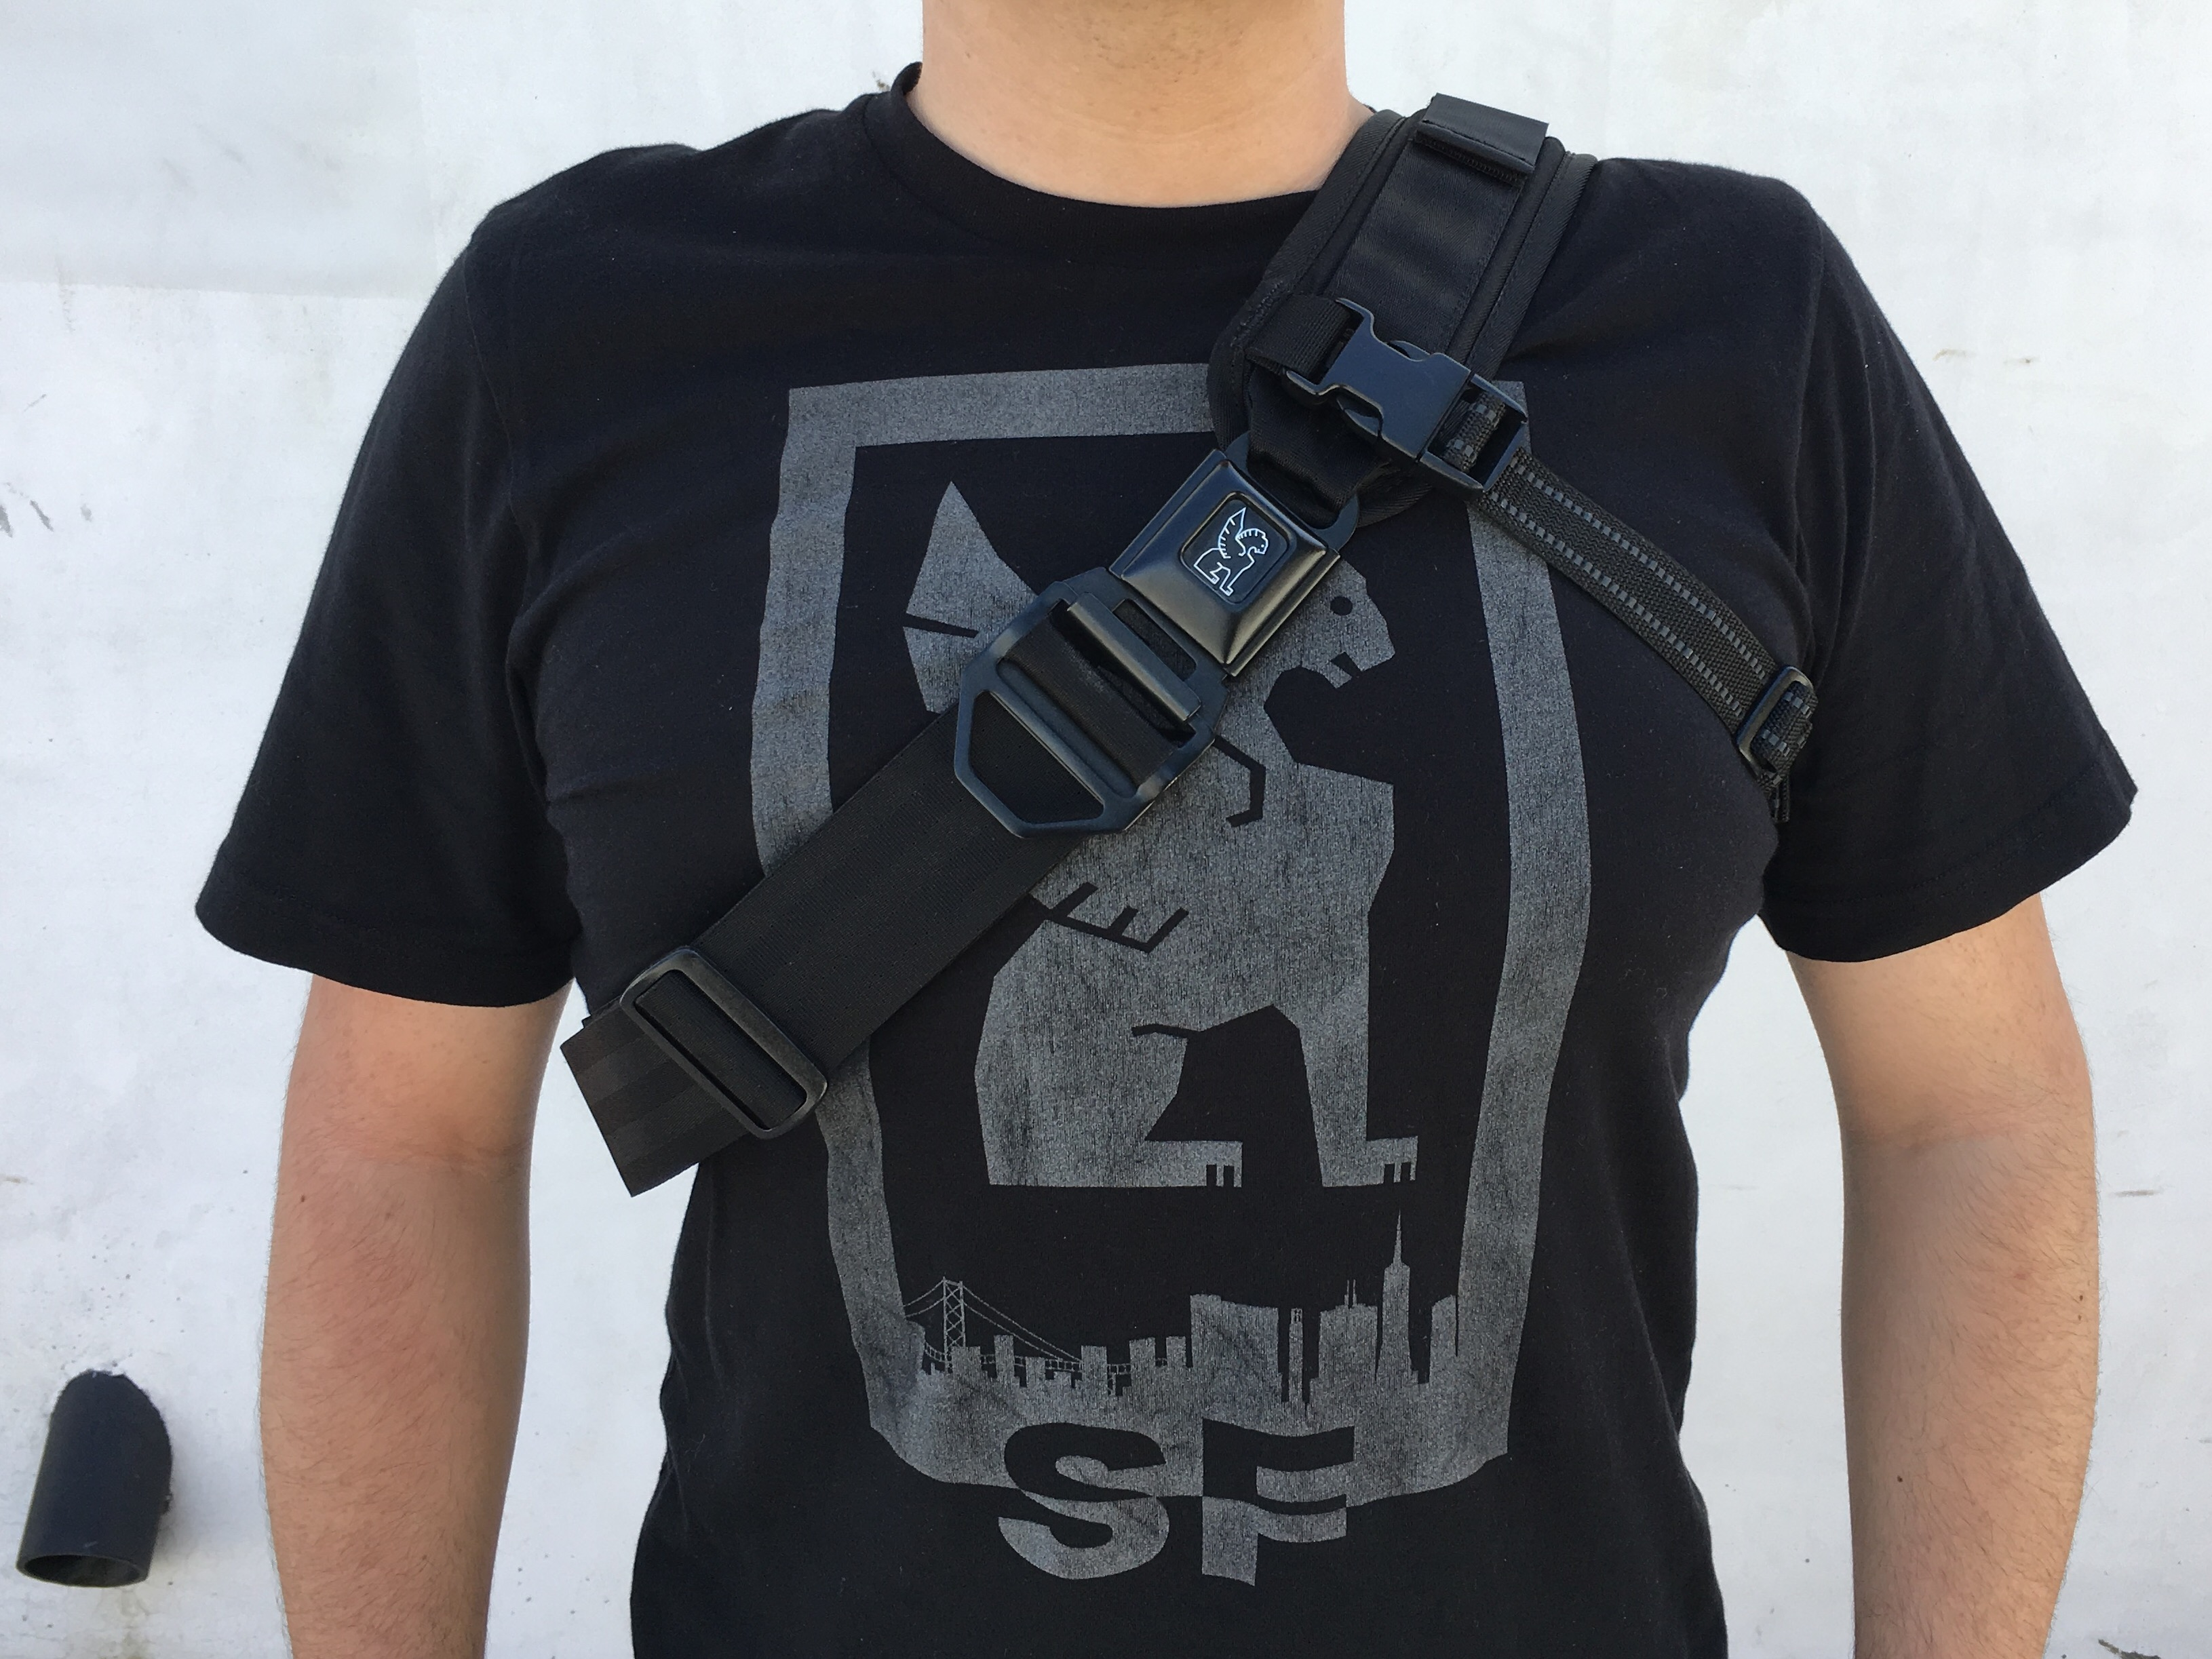 chrome industries kadet review on body strap